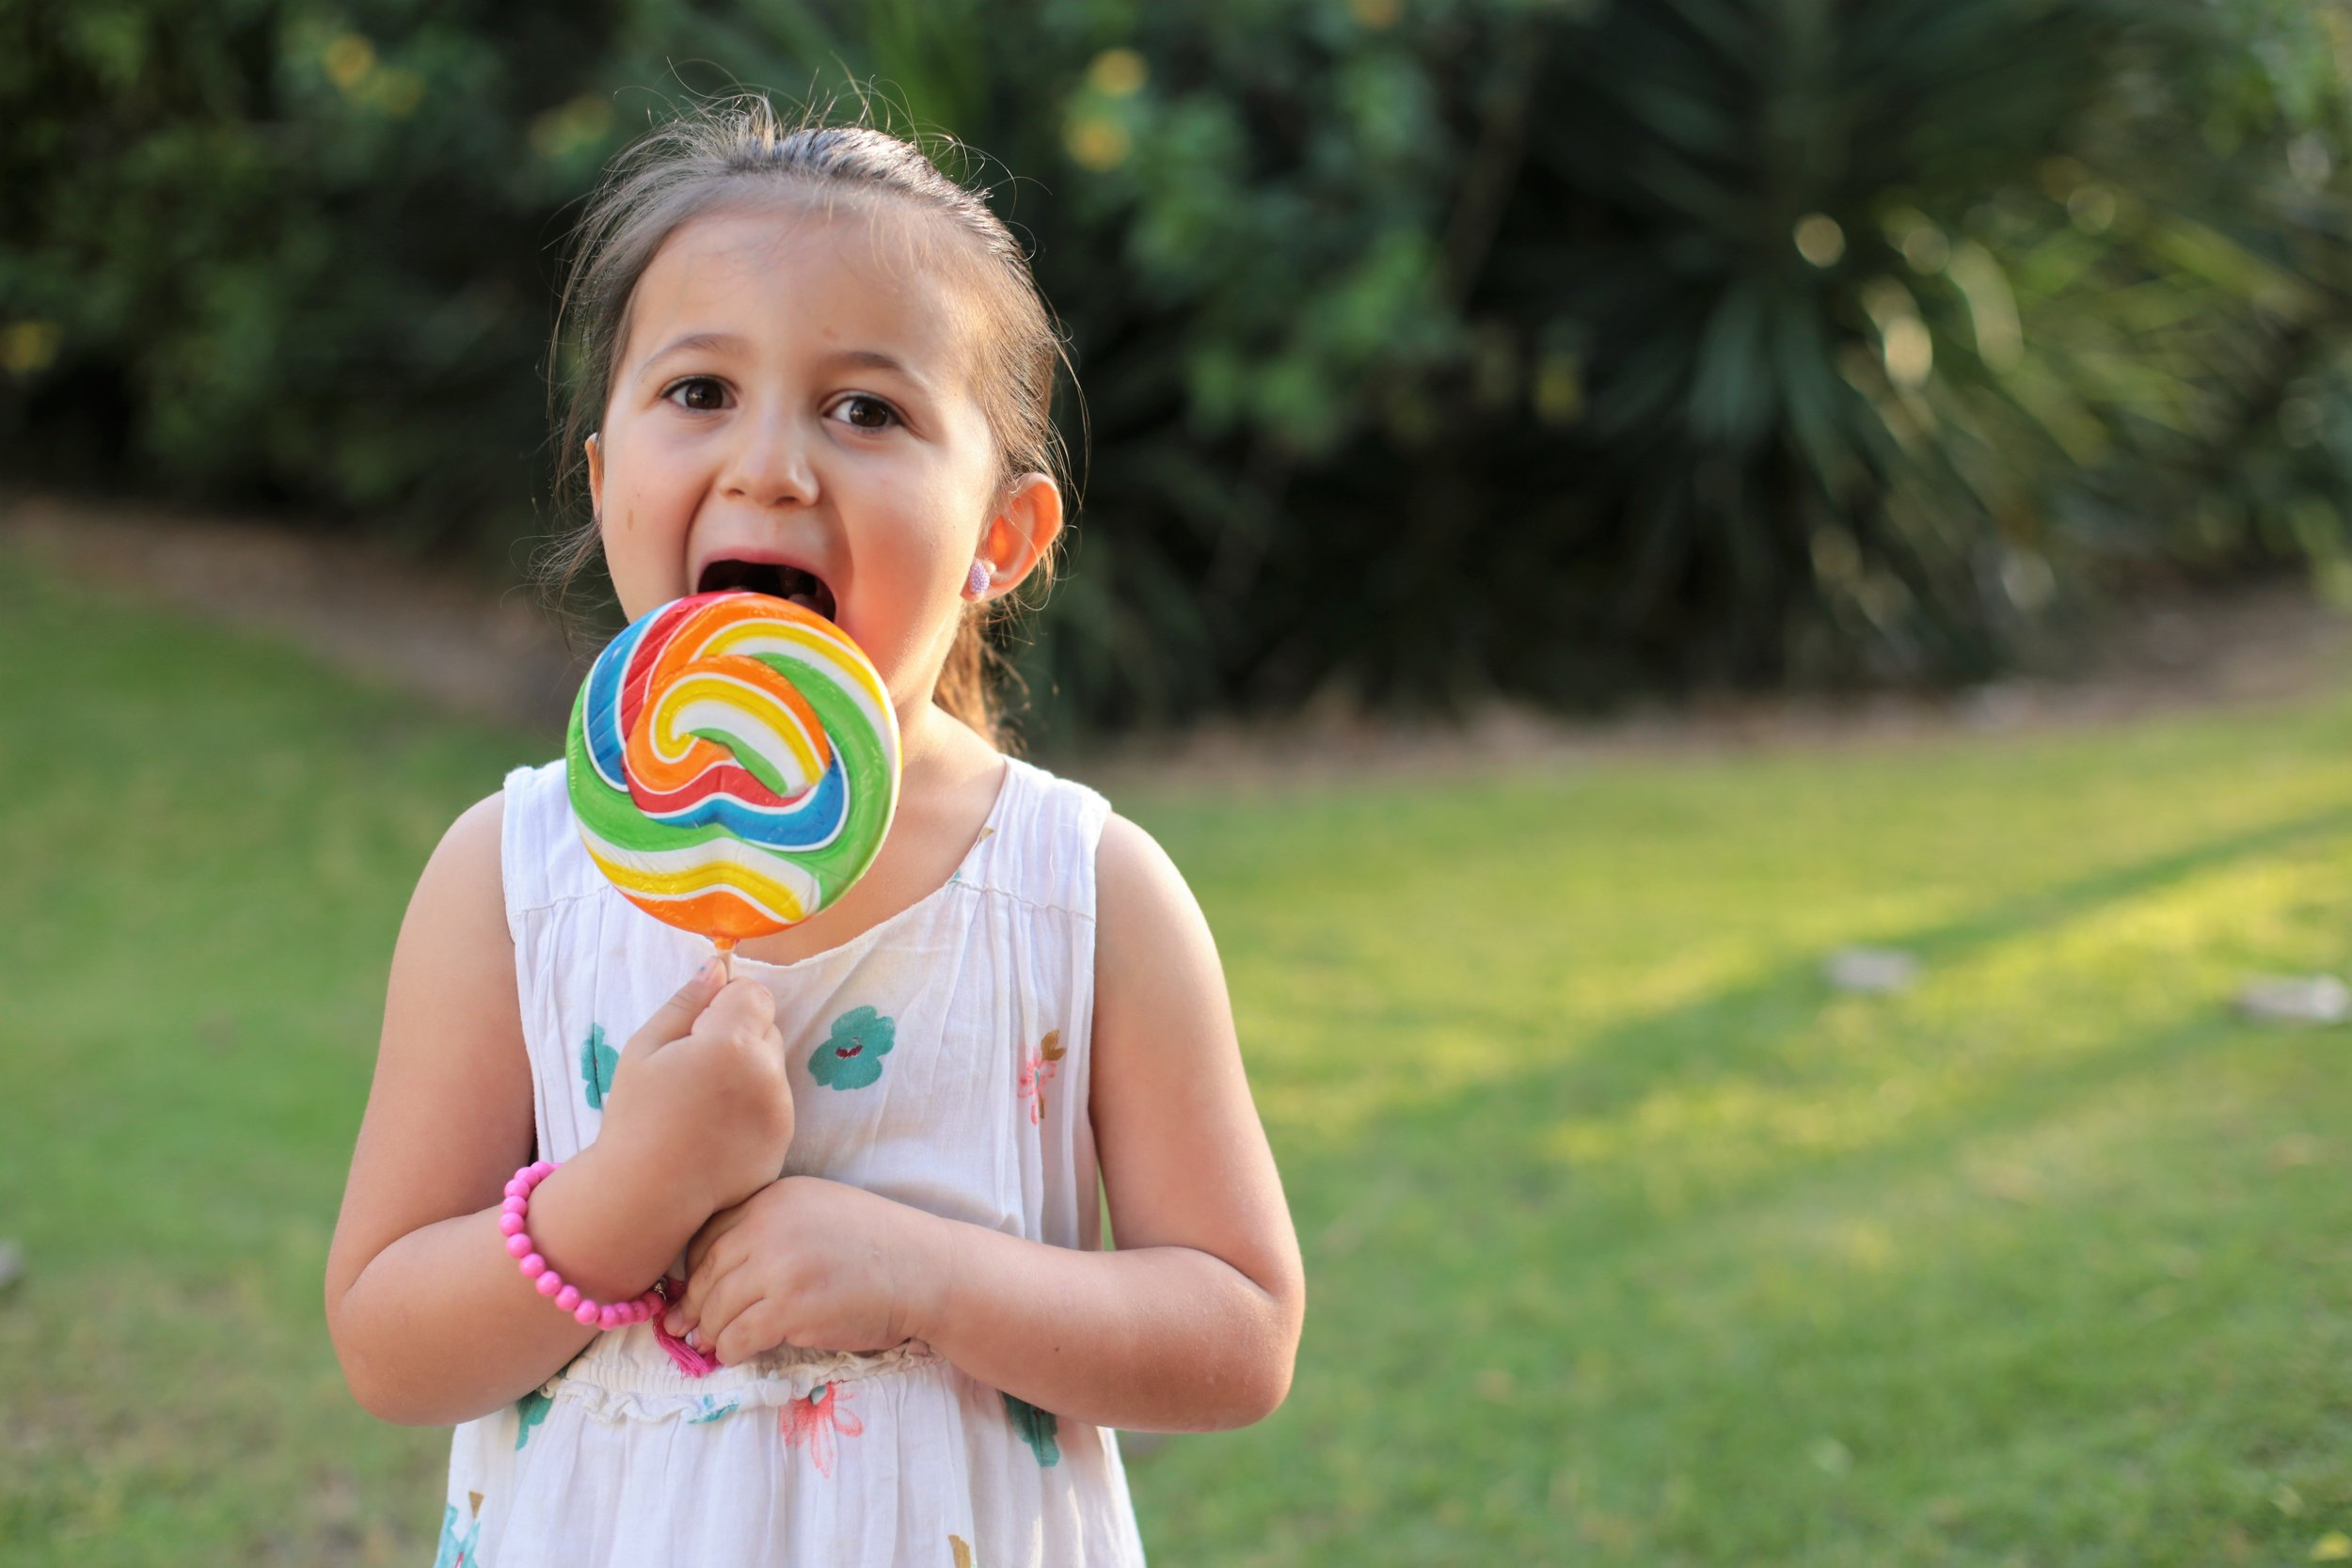 Lollipops and Ice Cream Cones  Toddlers and children enjoy the rewards of licking a lollipop or an ice cream cone, often not realizing they are participating in important aftercare.